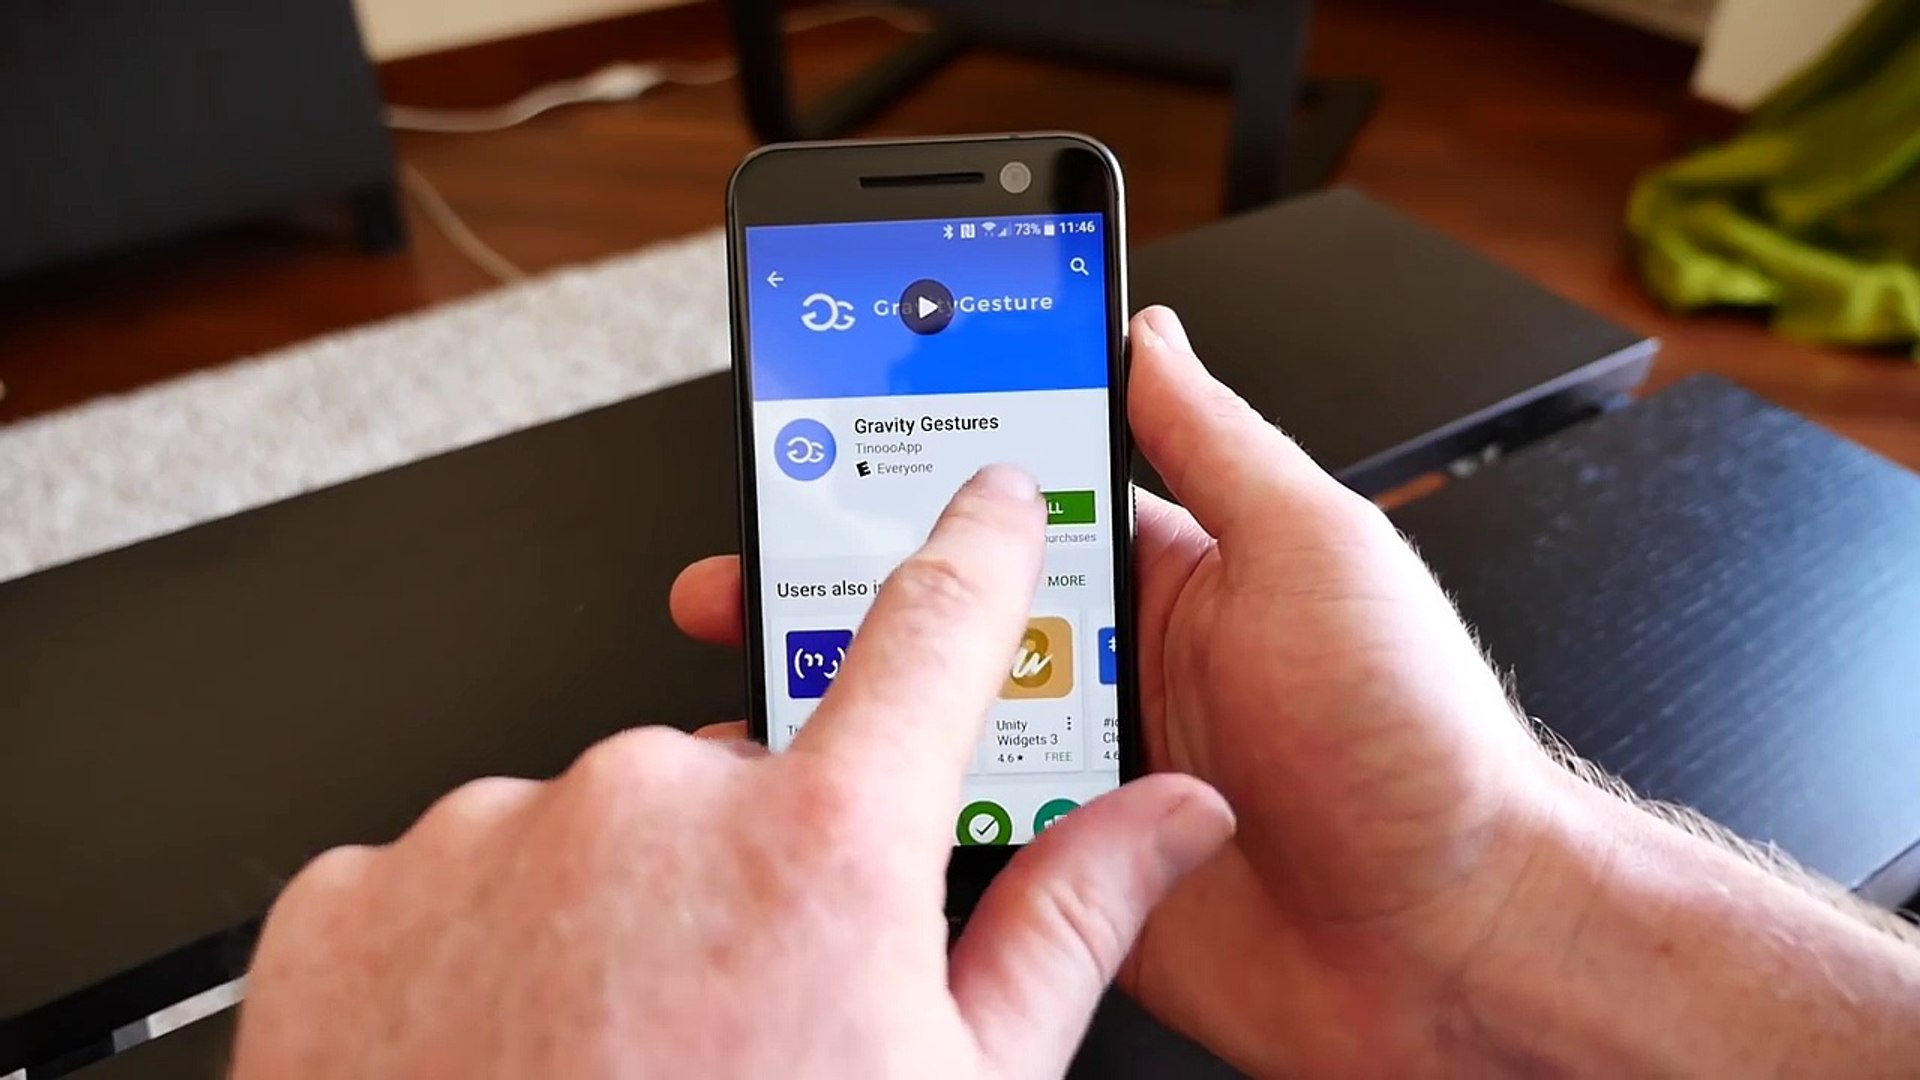 How to add gesture controls to any Android device